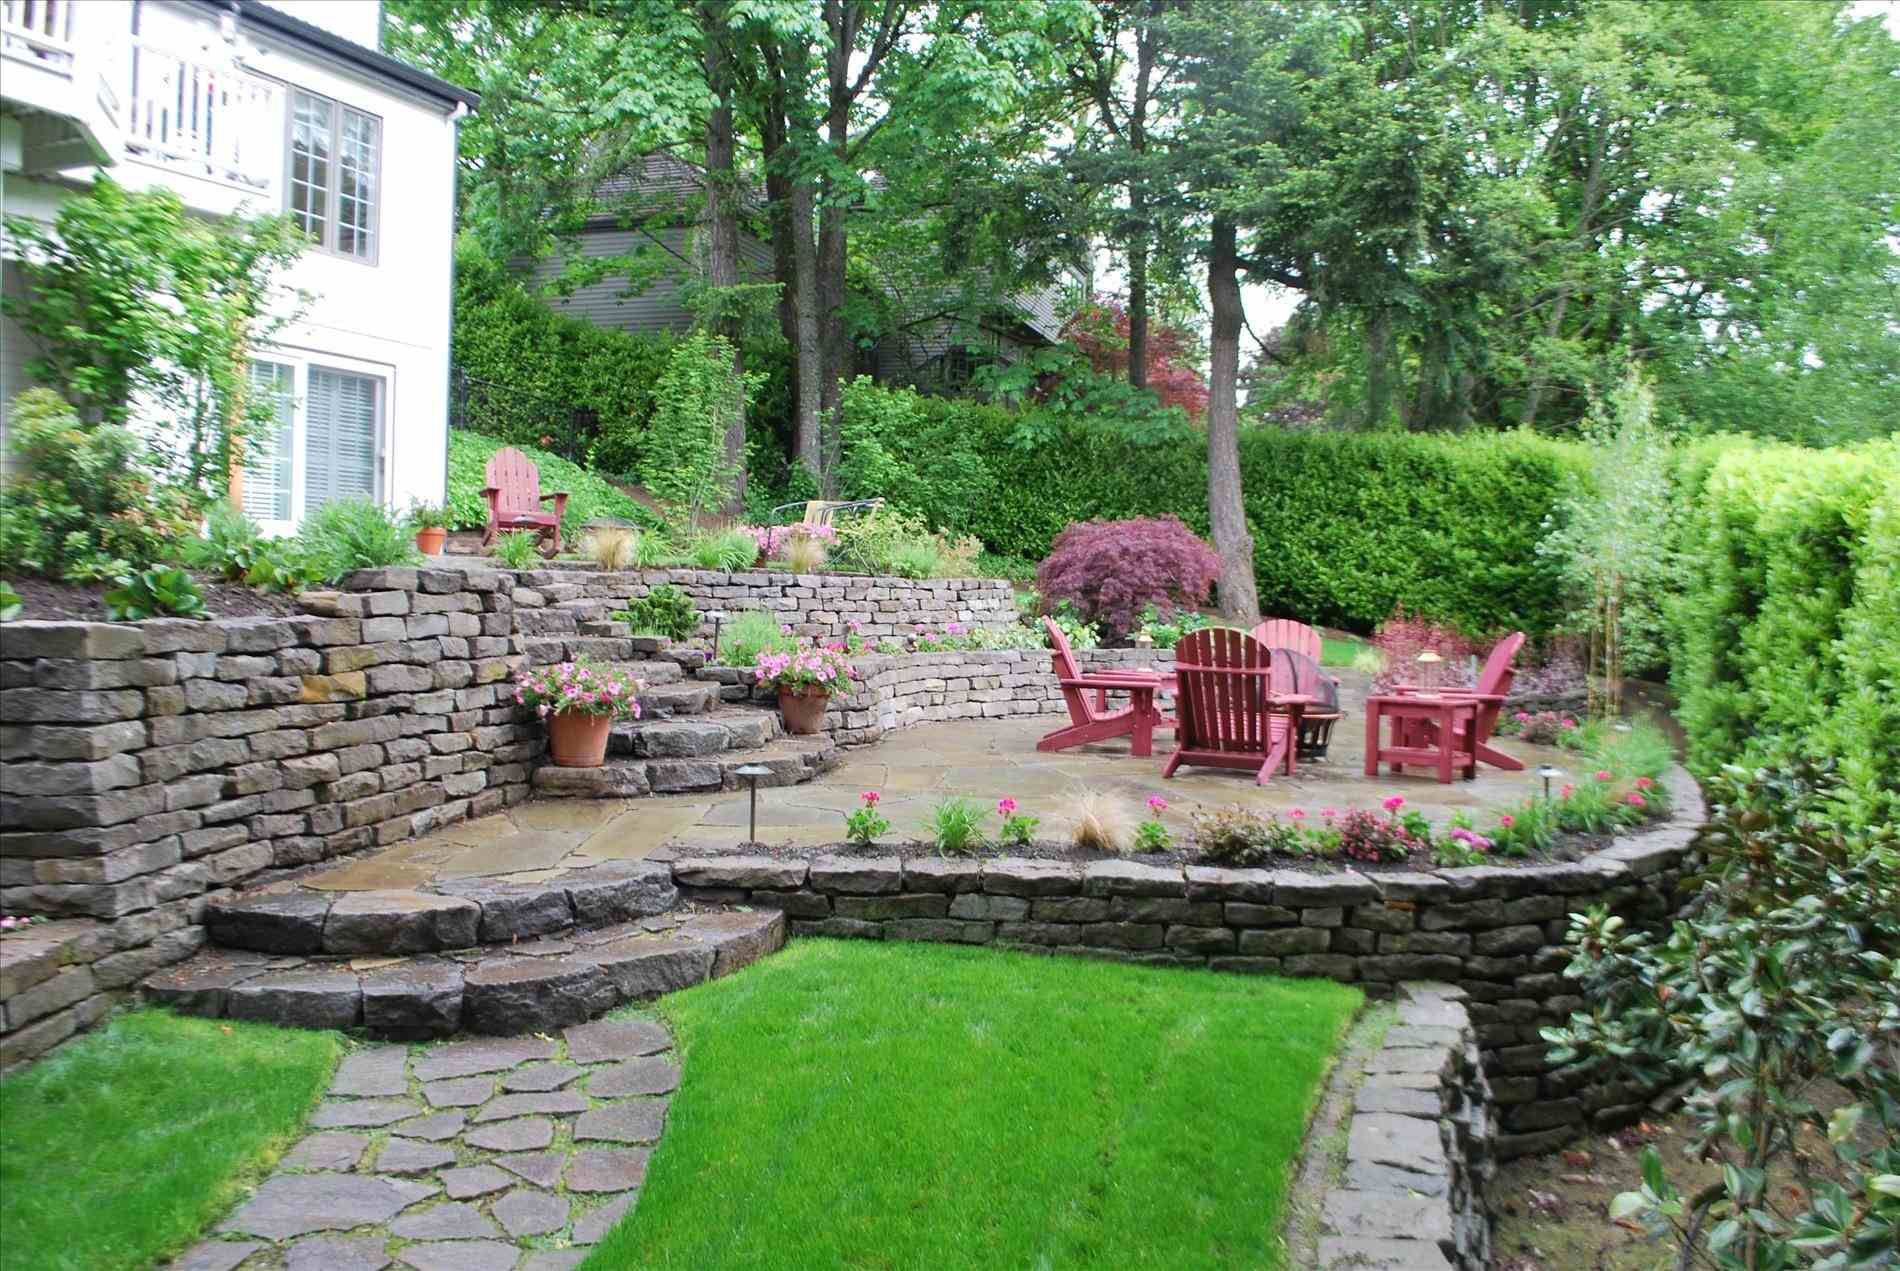 Landscape Design Ideas Sloped Backyard Front Yard for 14 Some of the Coolest Concepts of How to Build Landscape Design For Sloped Backyard